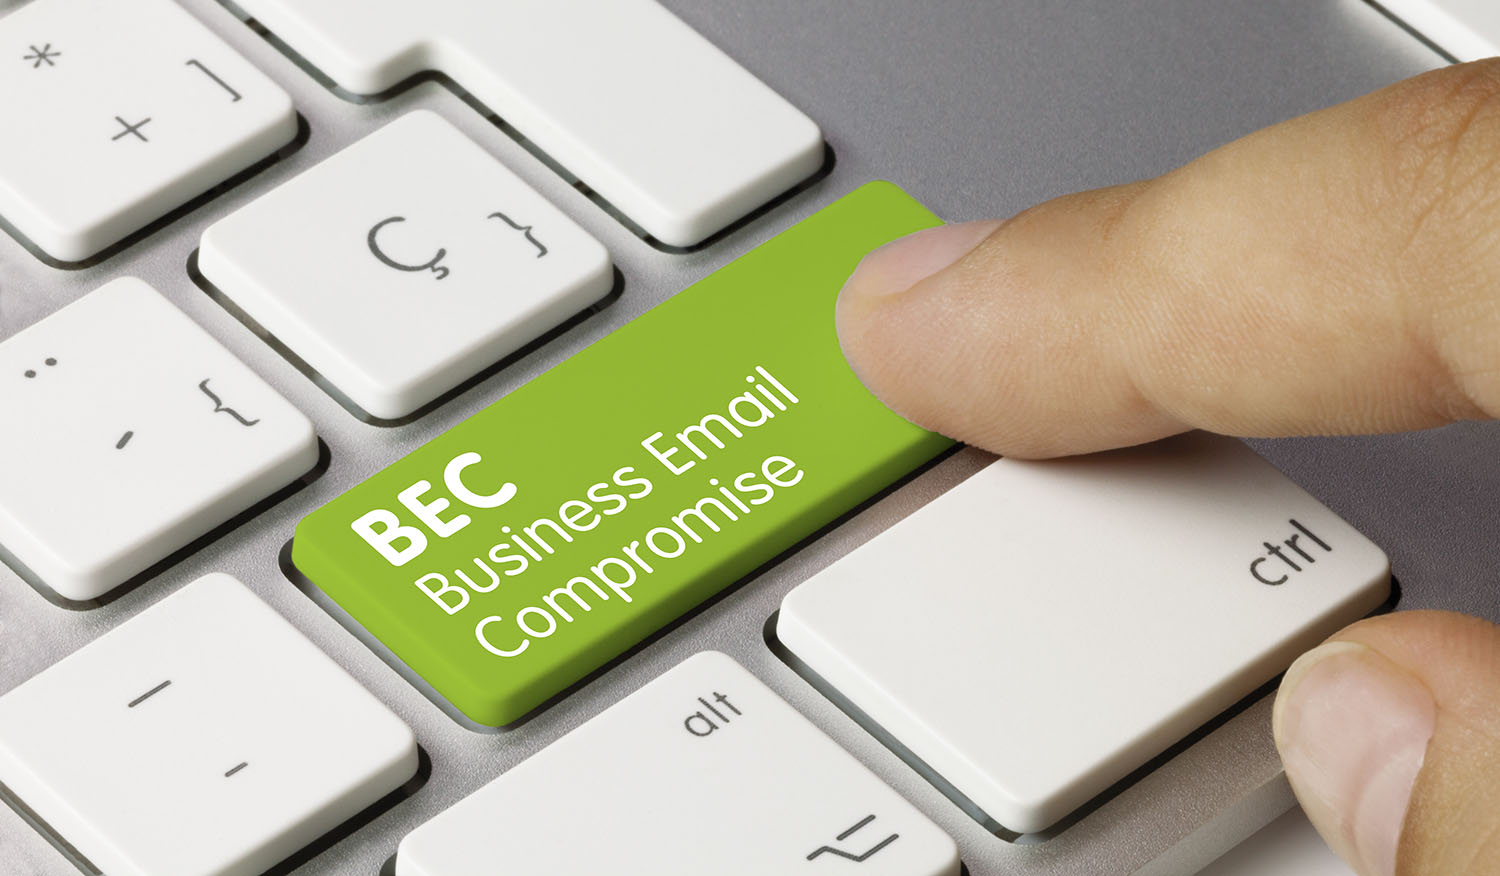 BEC Scams - How to Spot a Business Email Compromise Scam